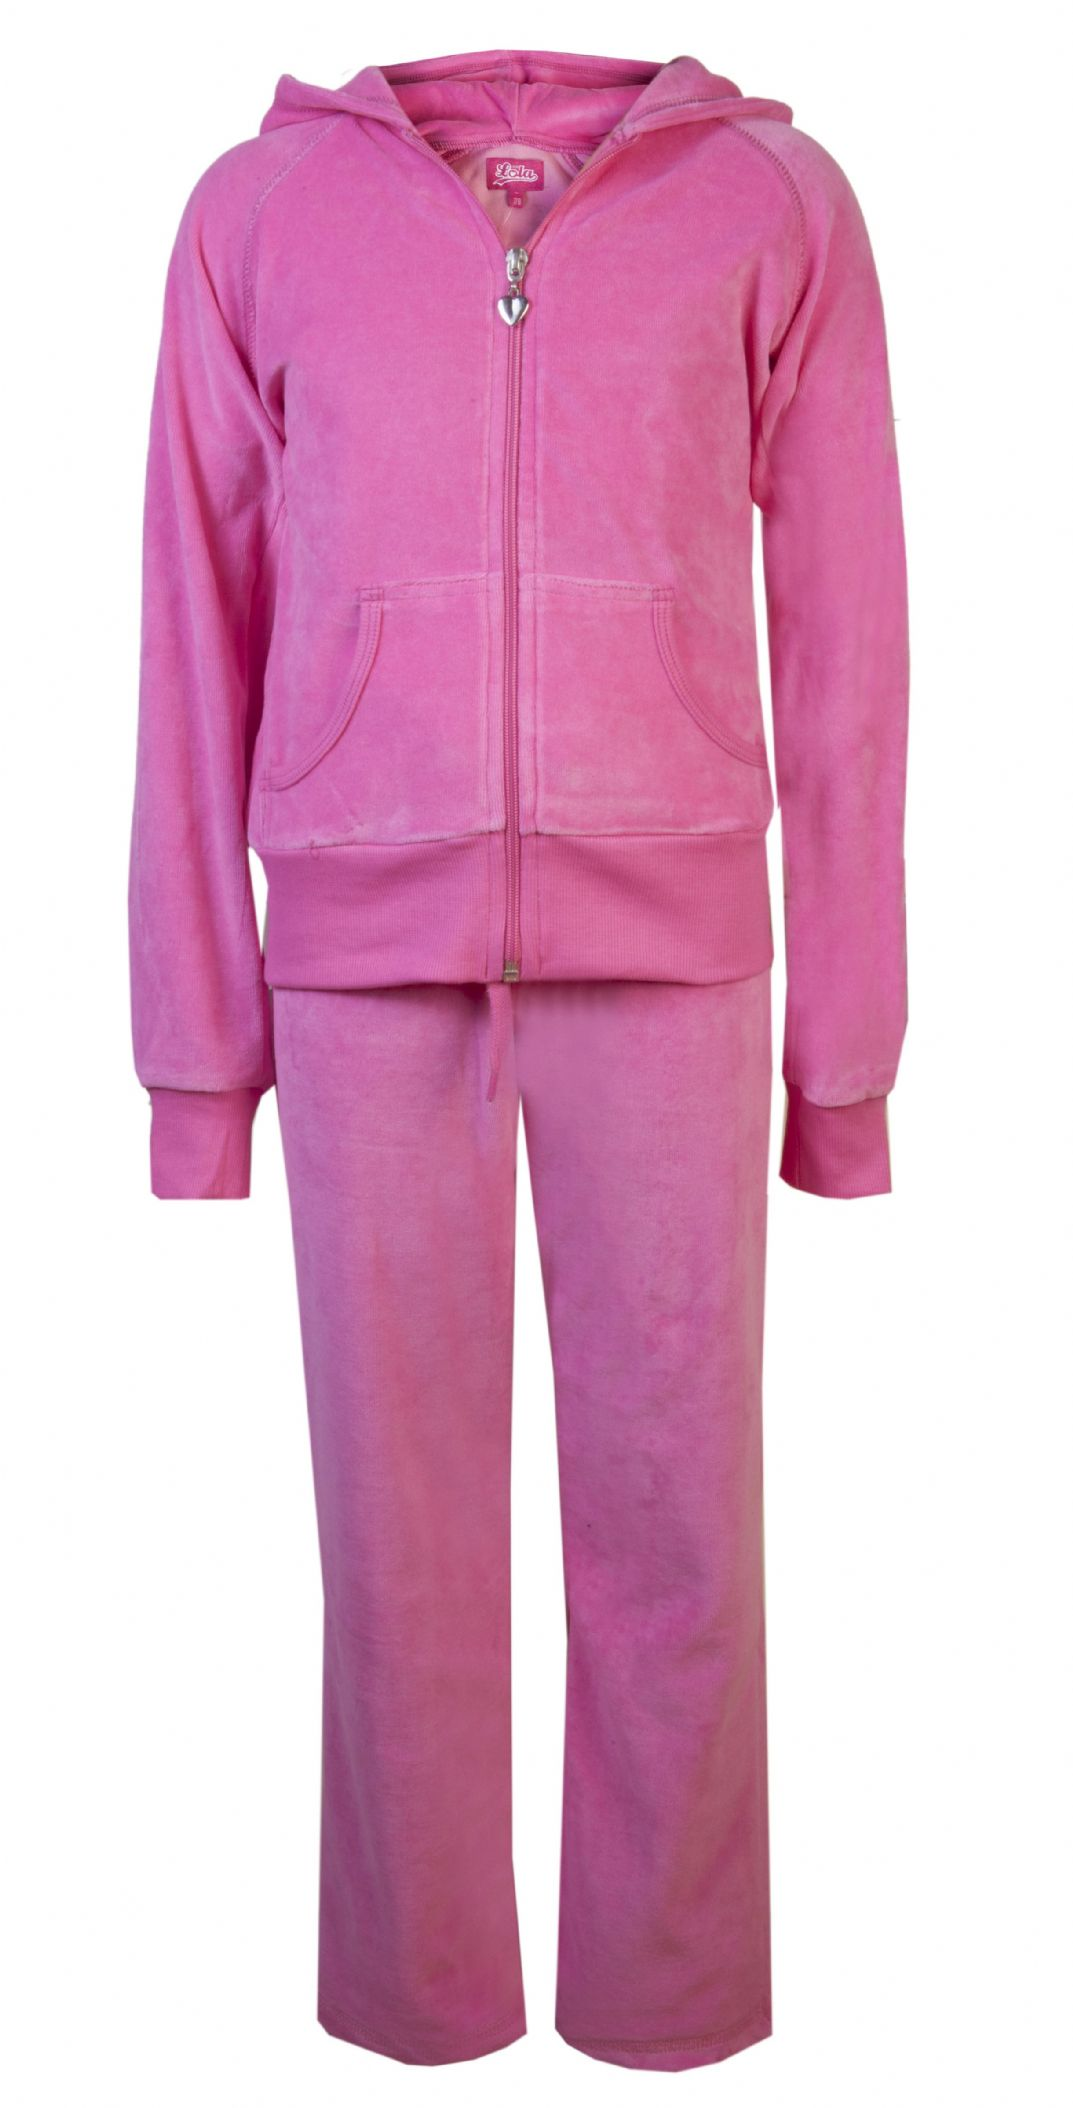 Love Lola Children s Velour Tracksuits Hot Pink